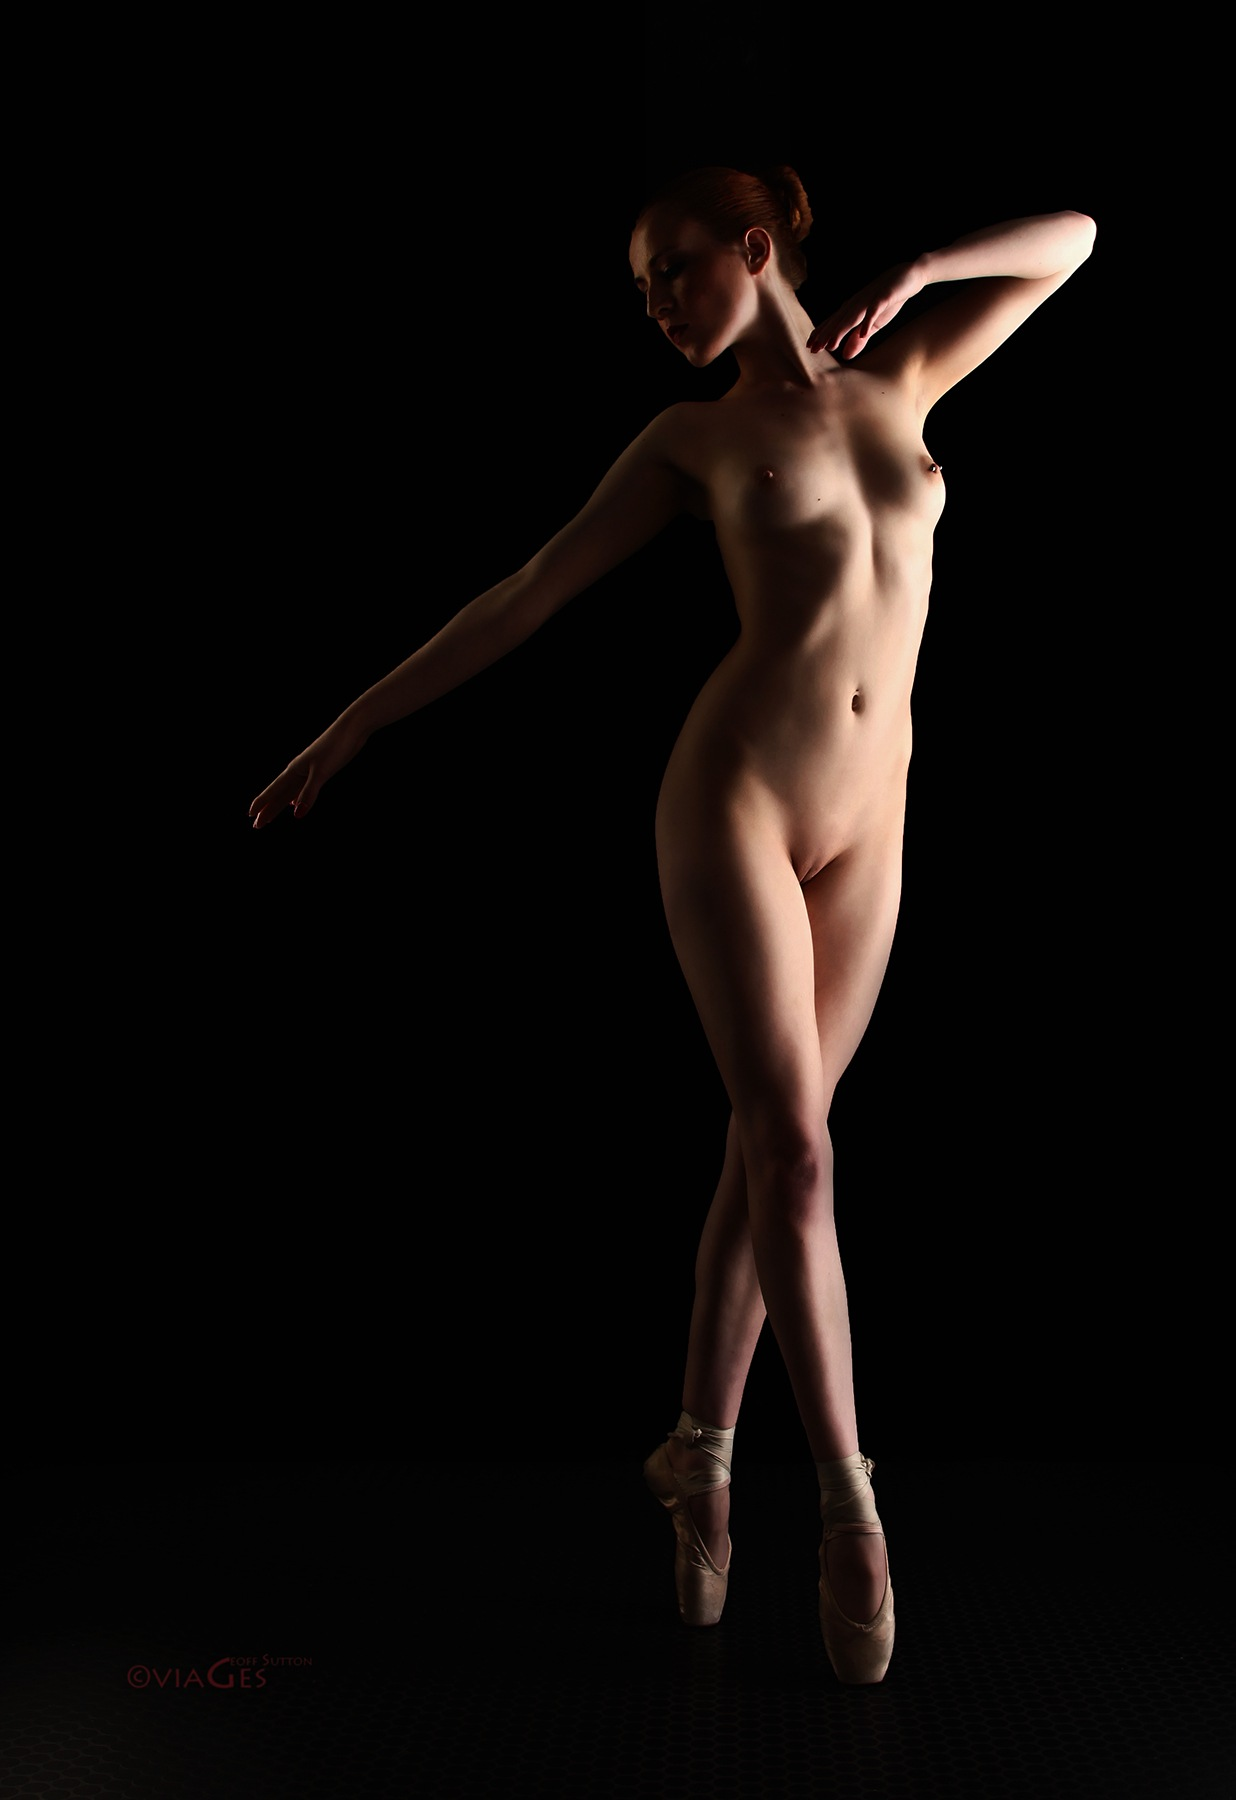 Nude Ballet by viages